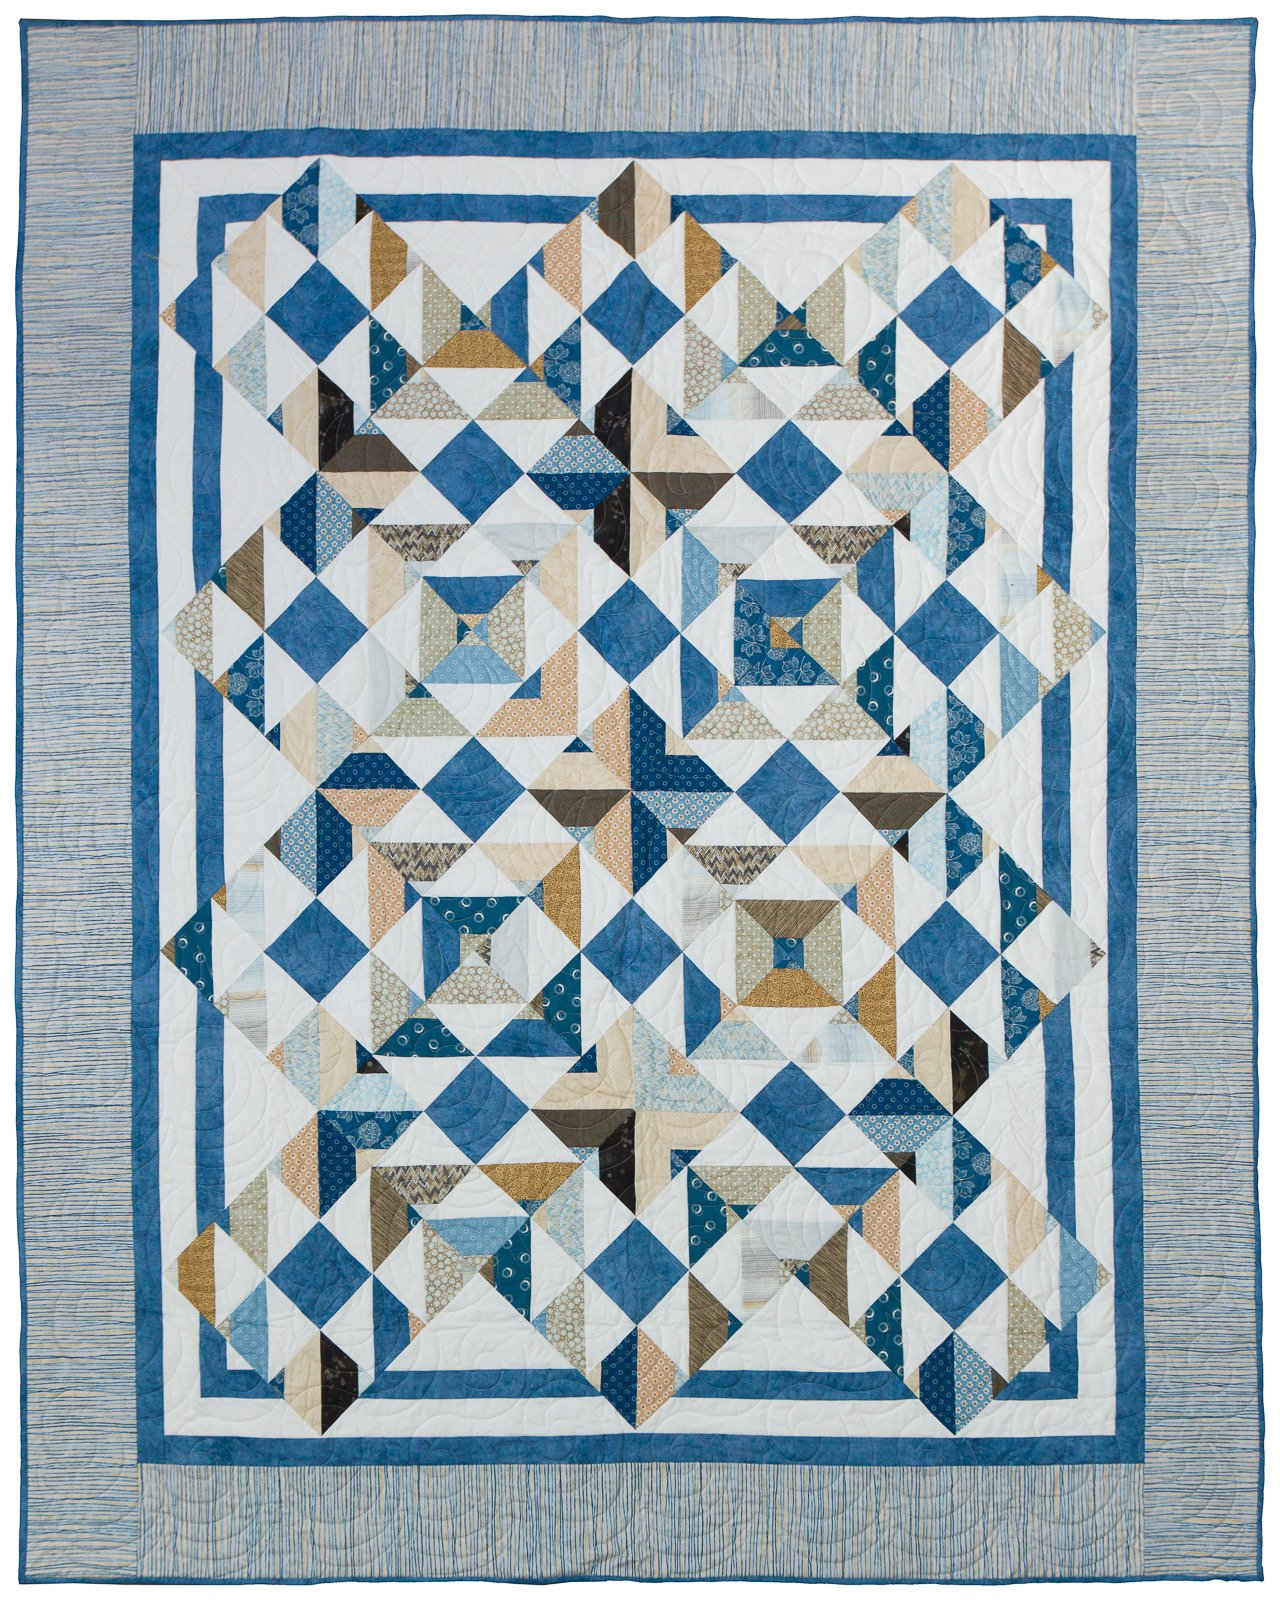 At Sea Quilt